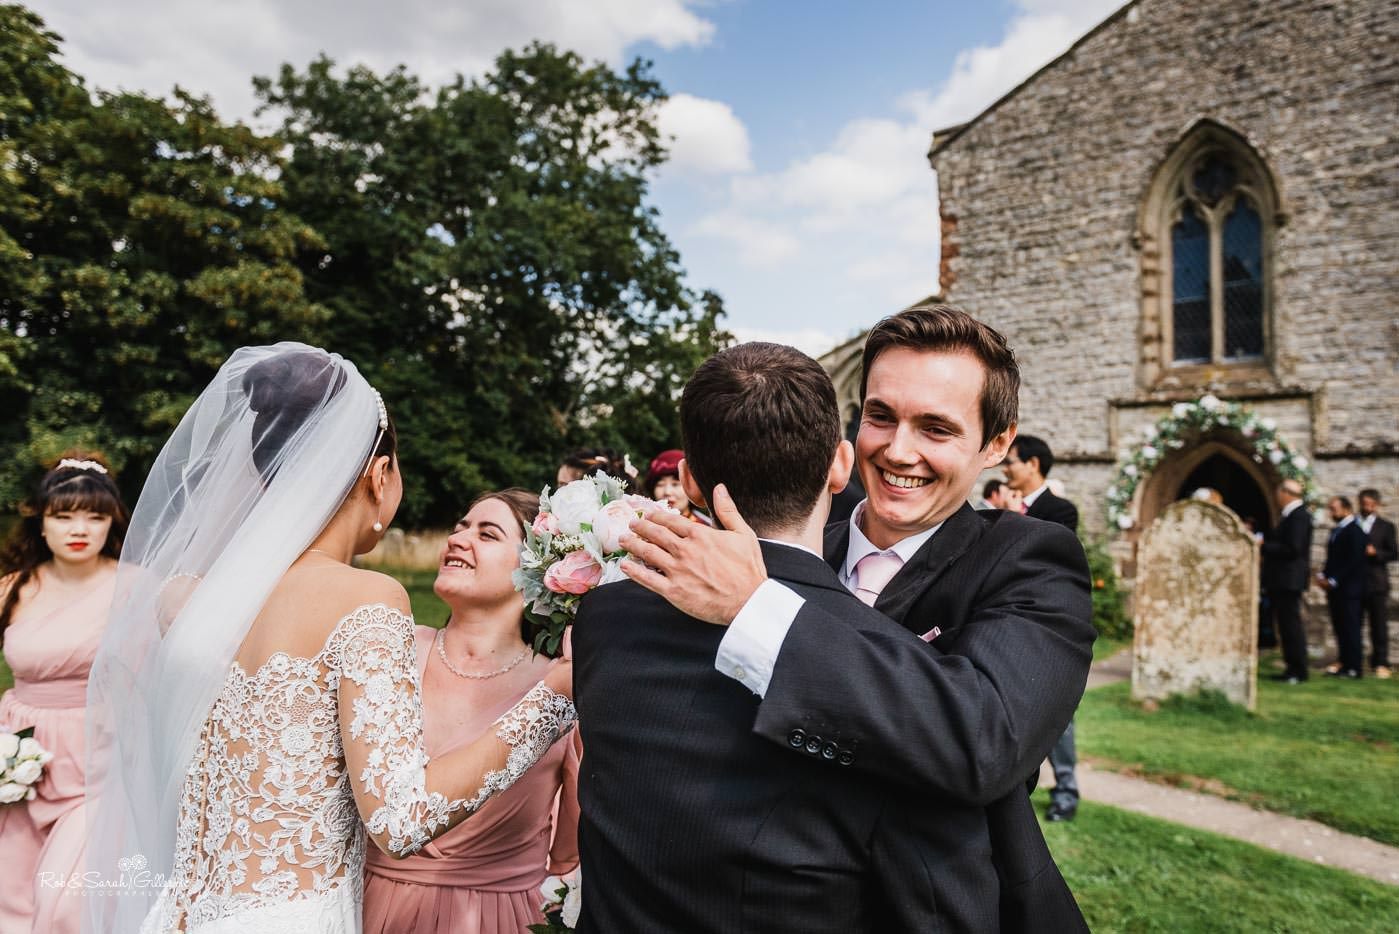 Wedding guests congratulate bride and groom at Bourton-on-Dunsmore church